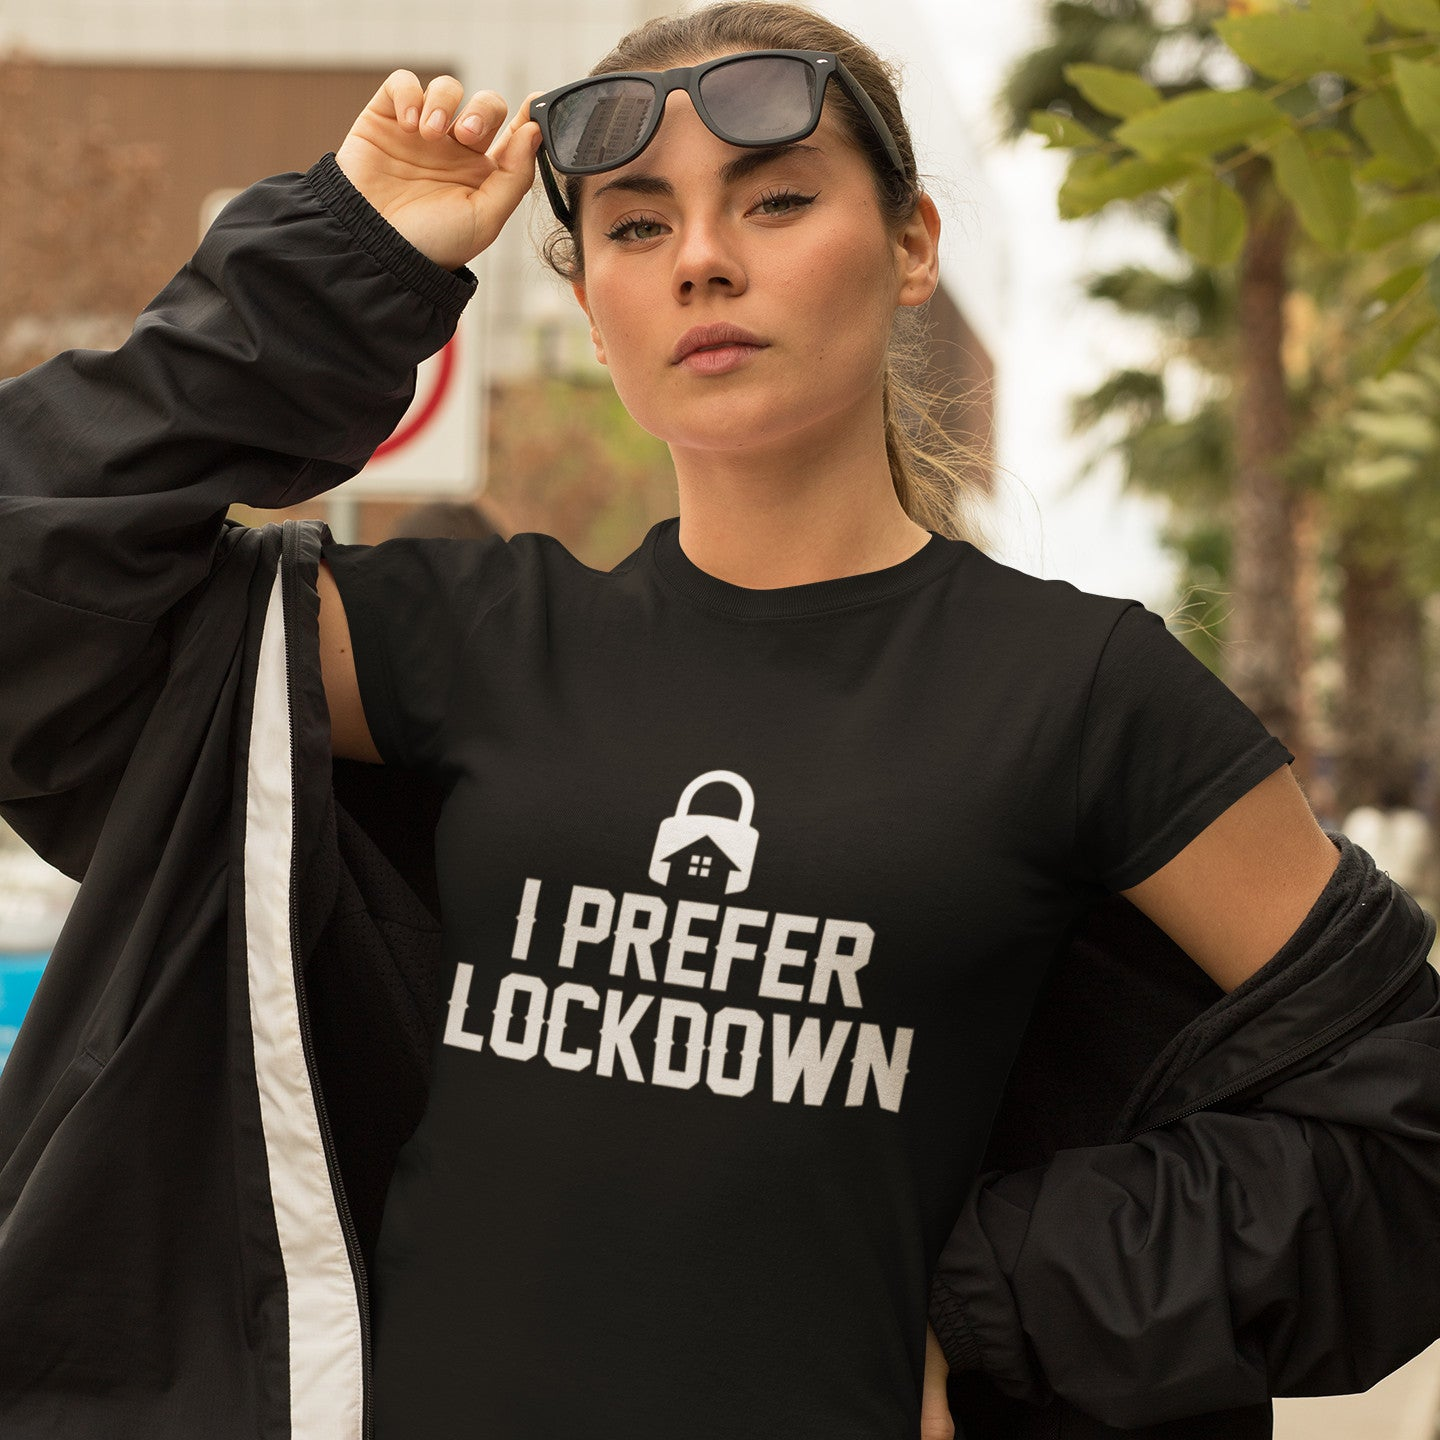 'I Prefer Lockdown' Black Unisex T-shirt, 8 Sizes